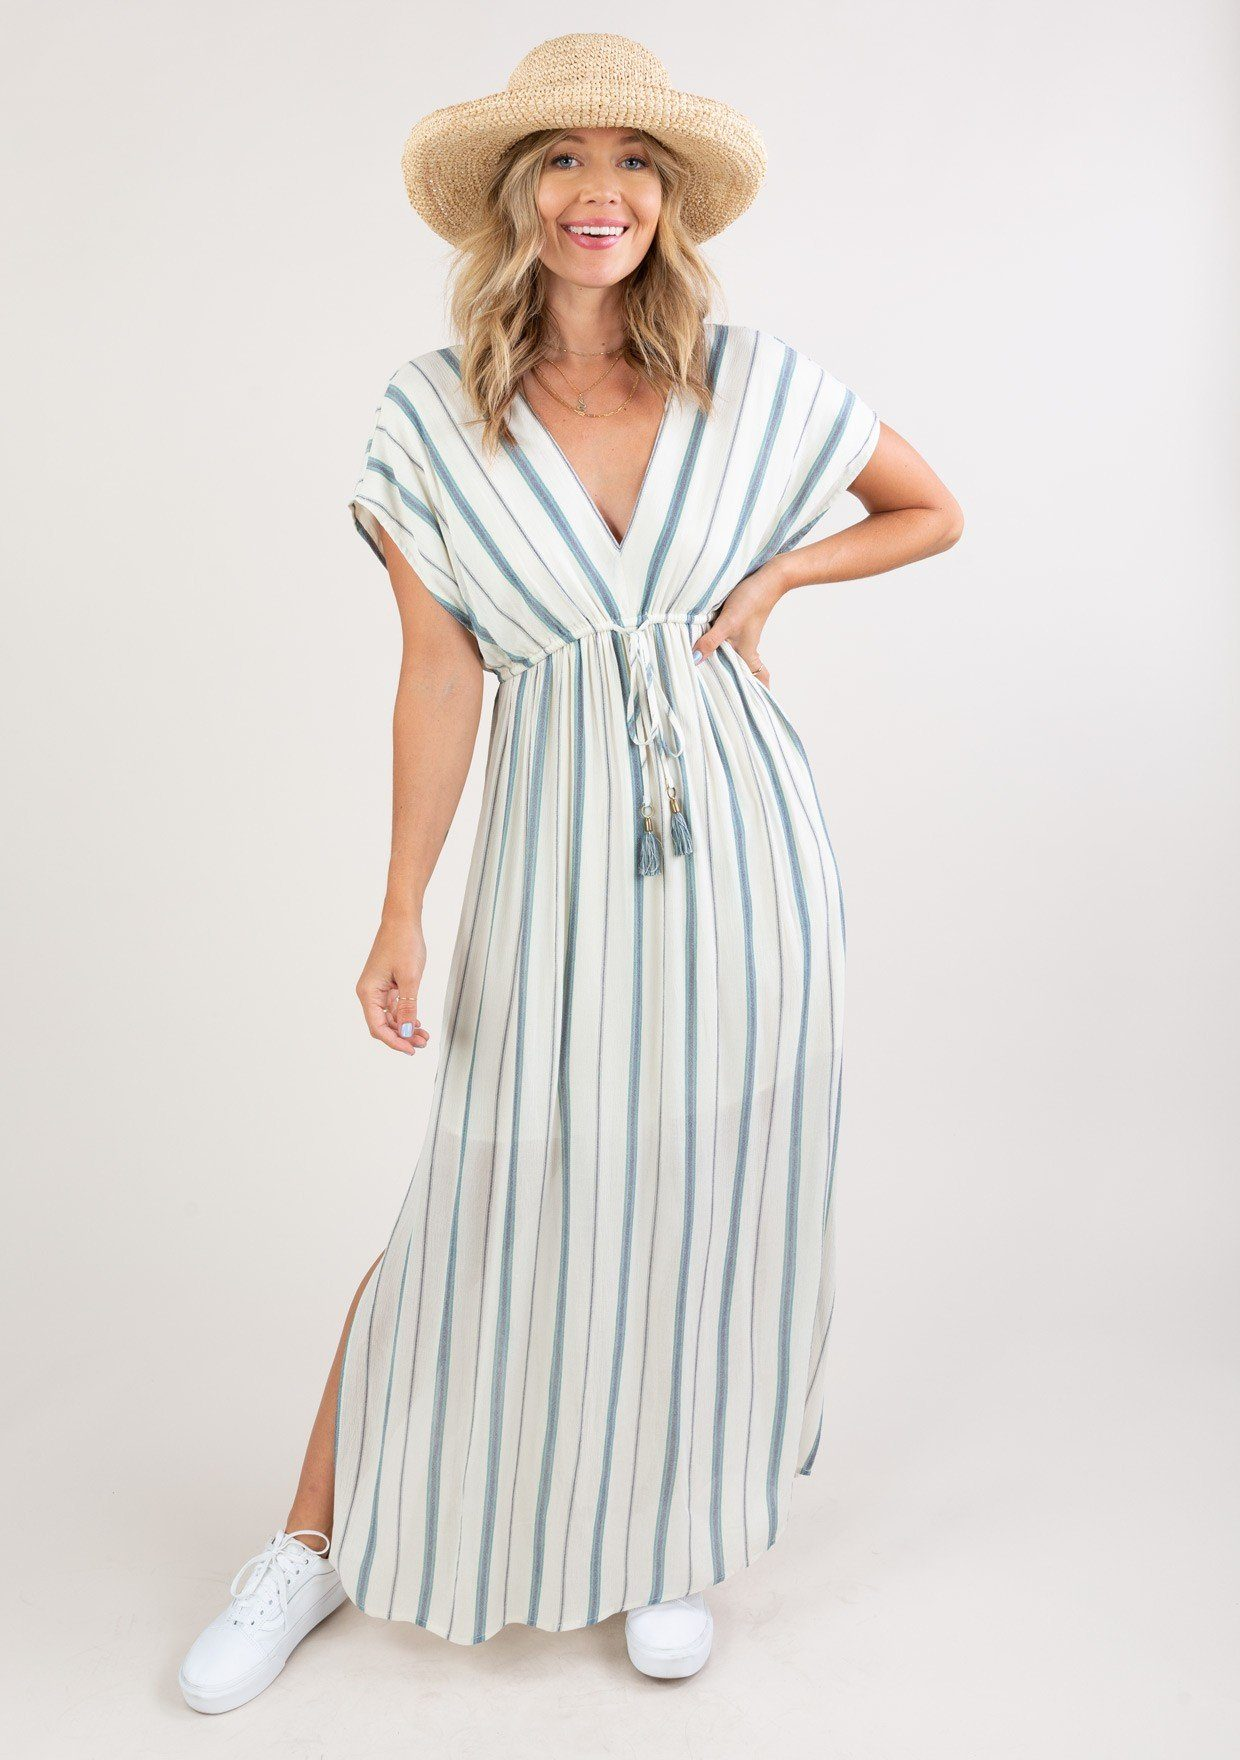 [Color: Blue Ivory] Bohemian beach maxi dress with stripes, v neckline, tie back detail and flattering short sleeves